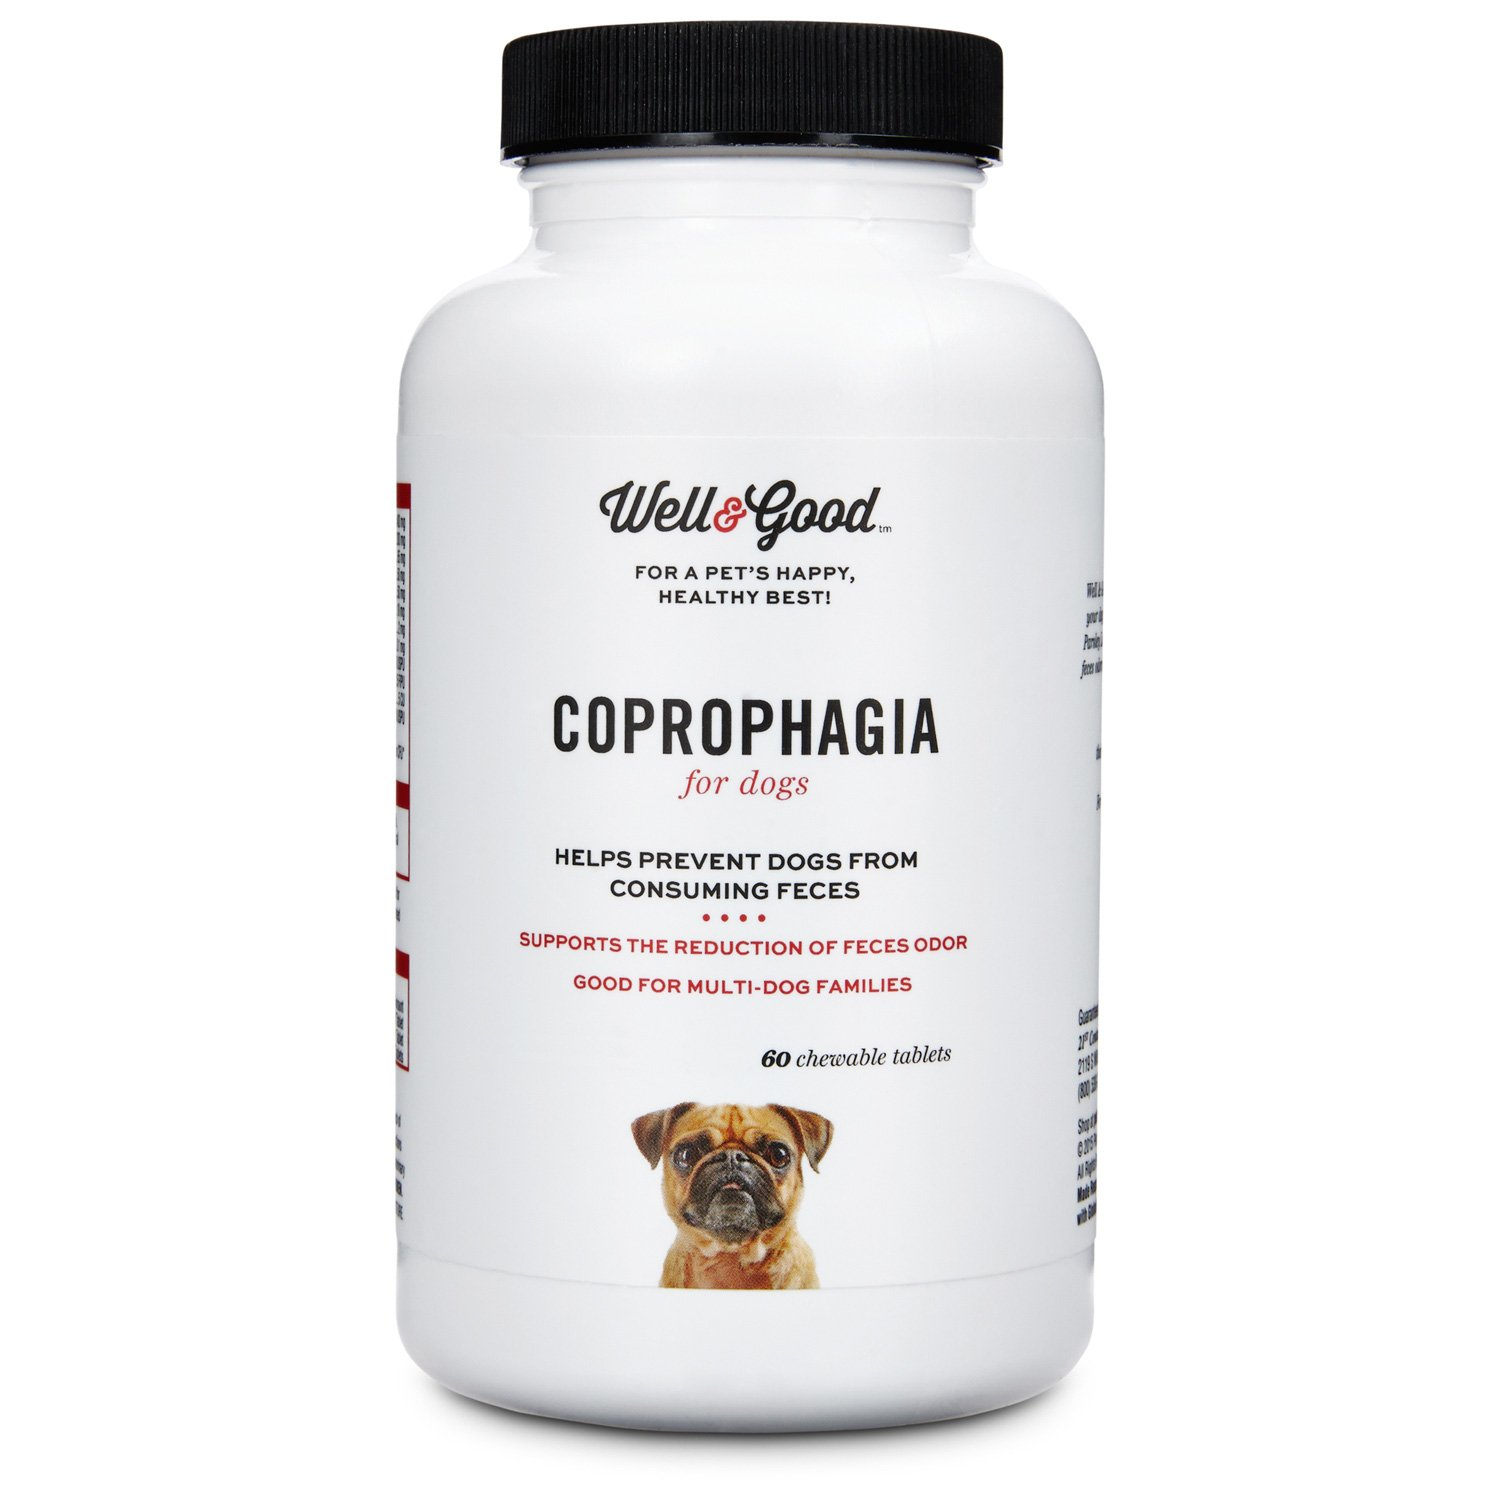 Well & Good Coprophagia Dog Tablets